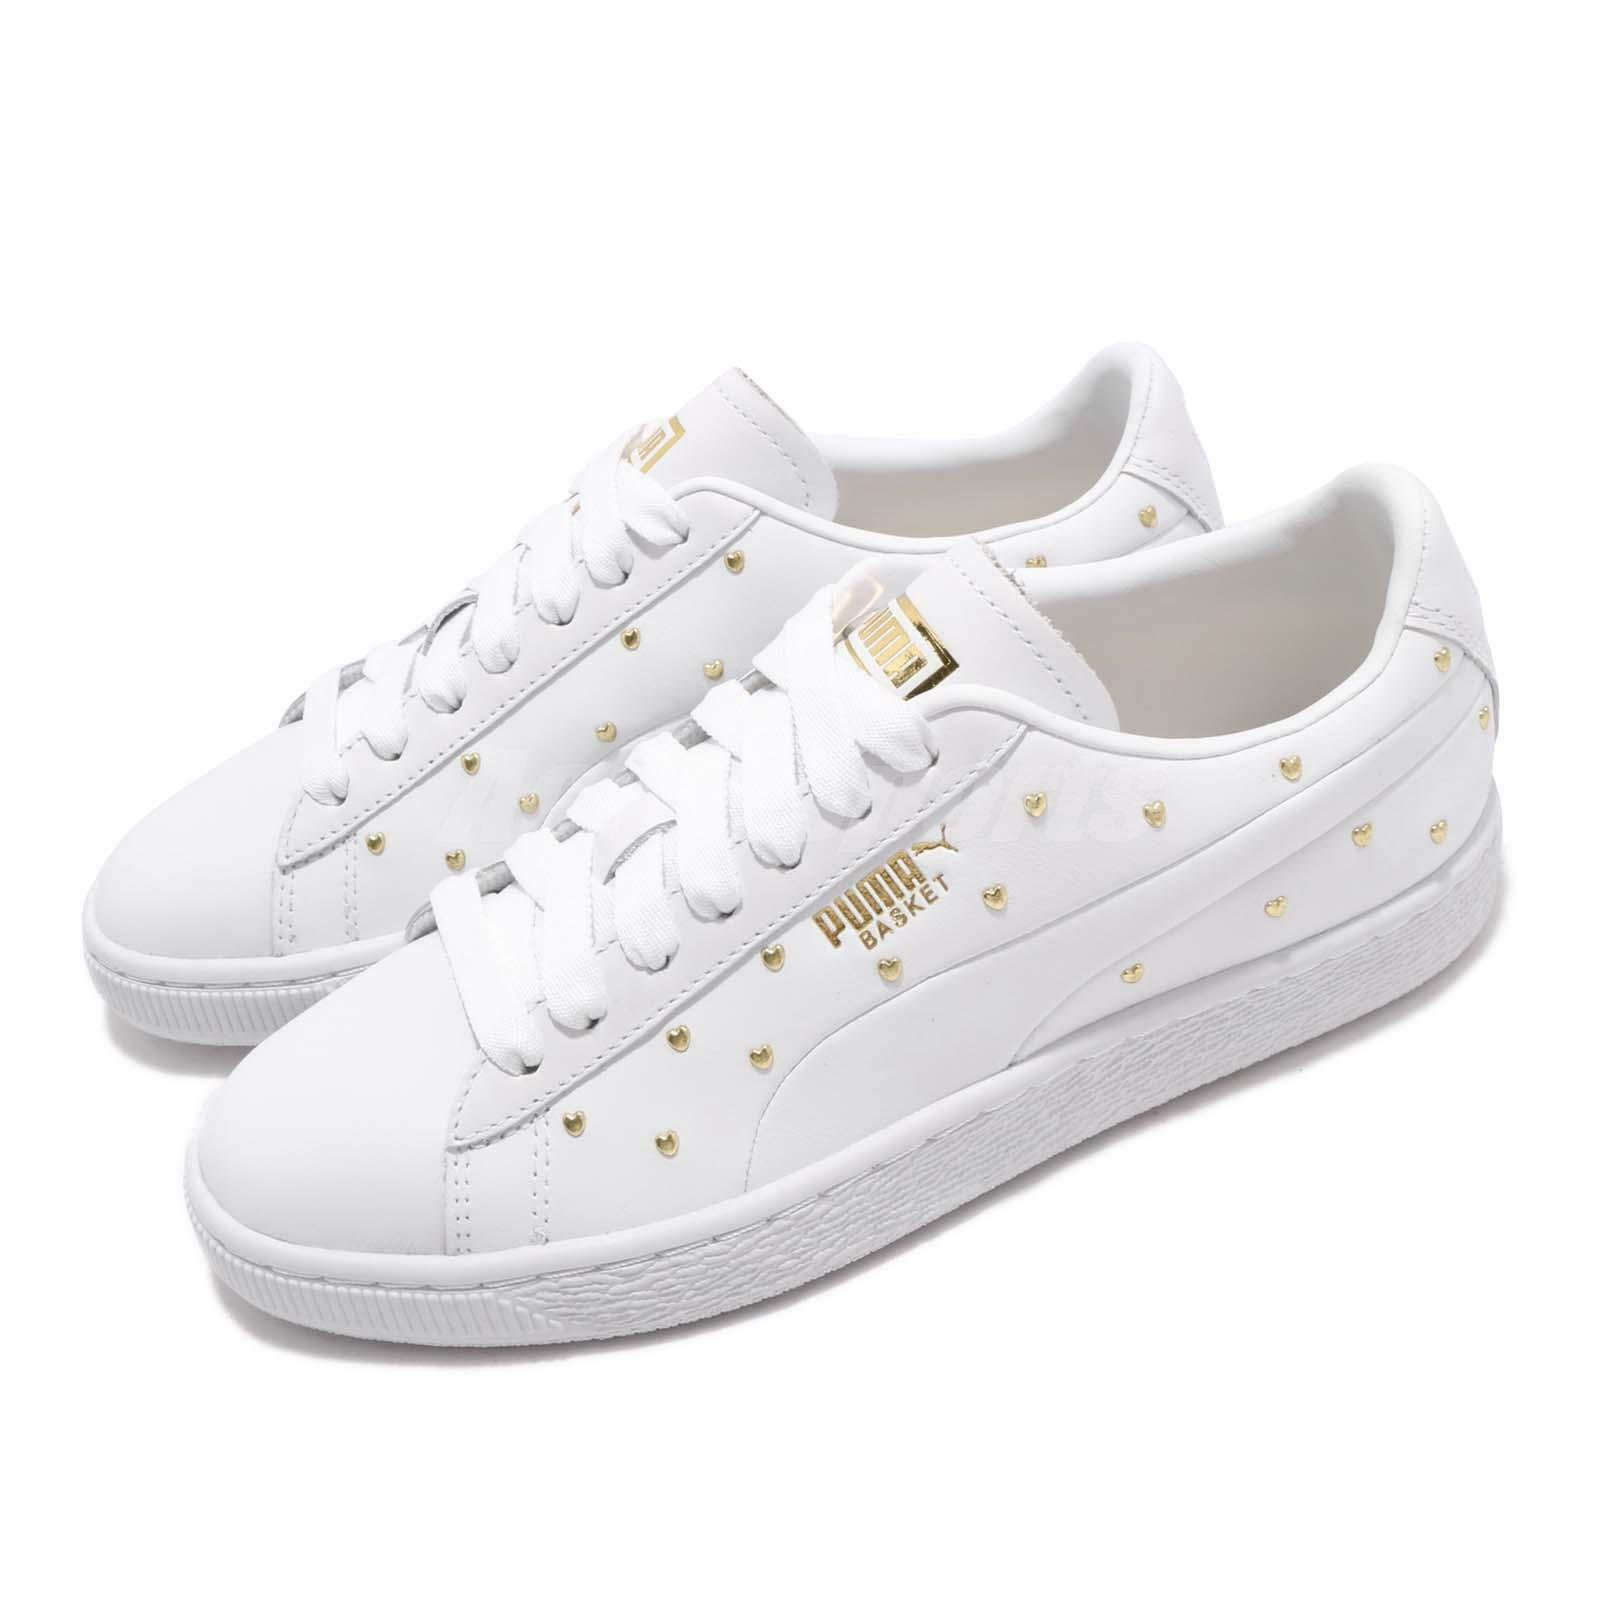 Puma Basket Studs Wns White gold Women Casual Lifestyle shoes Sneakers 369298-01